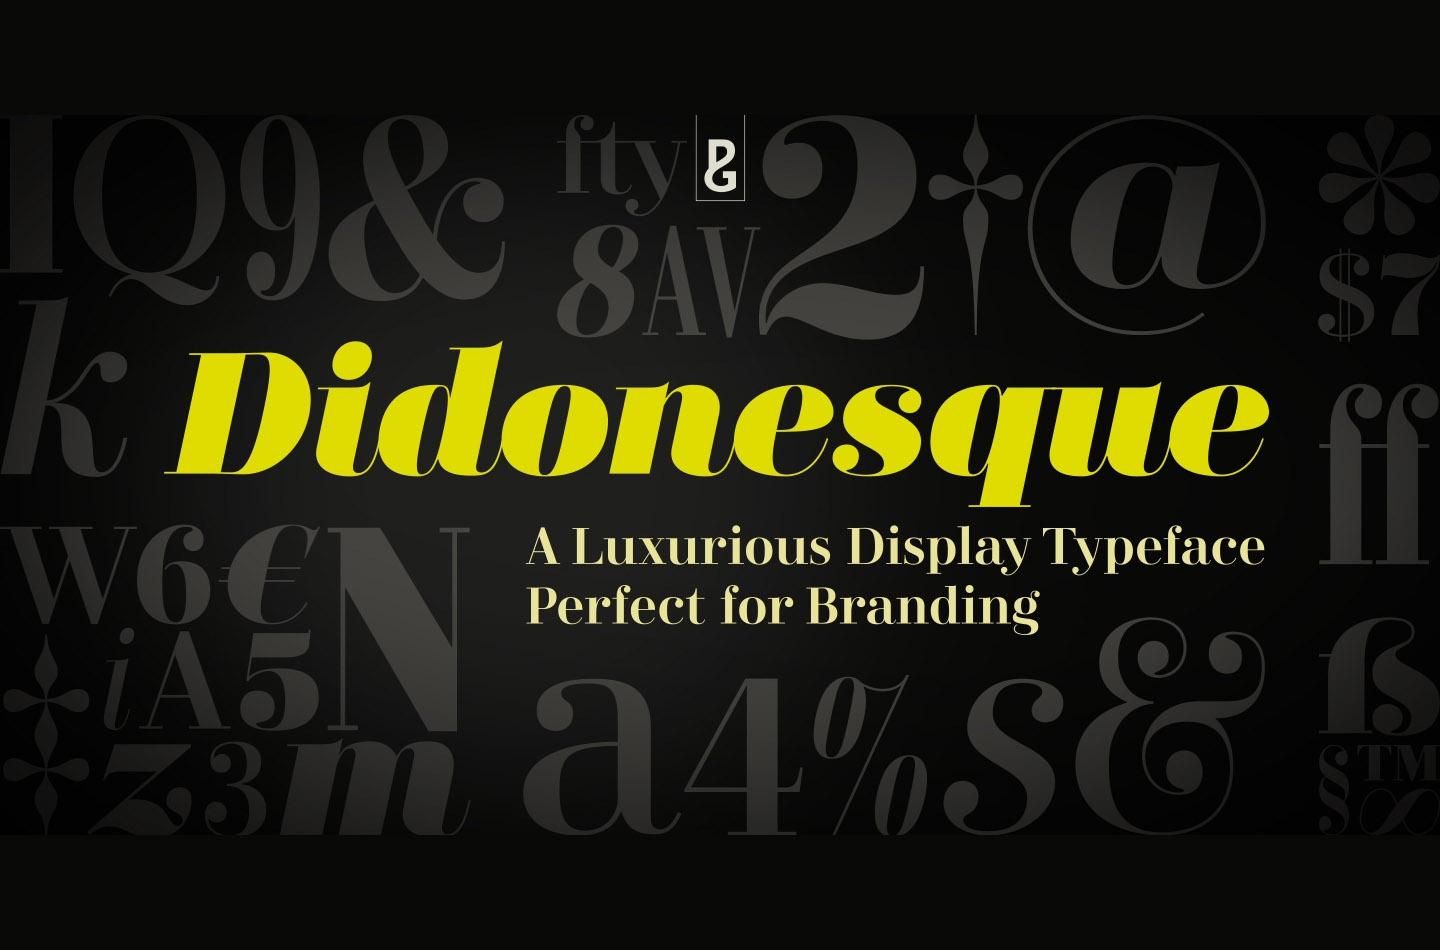 Didonesque Free Serif Font - Free Fonts